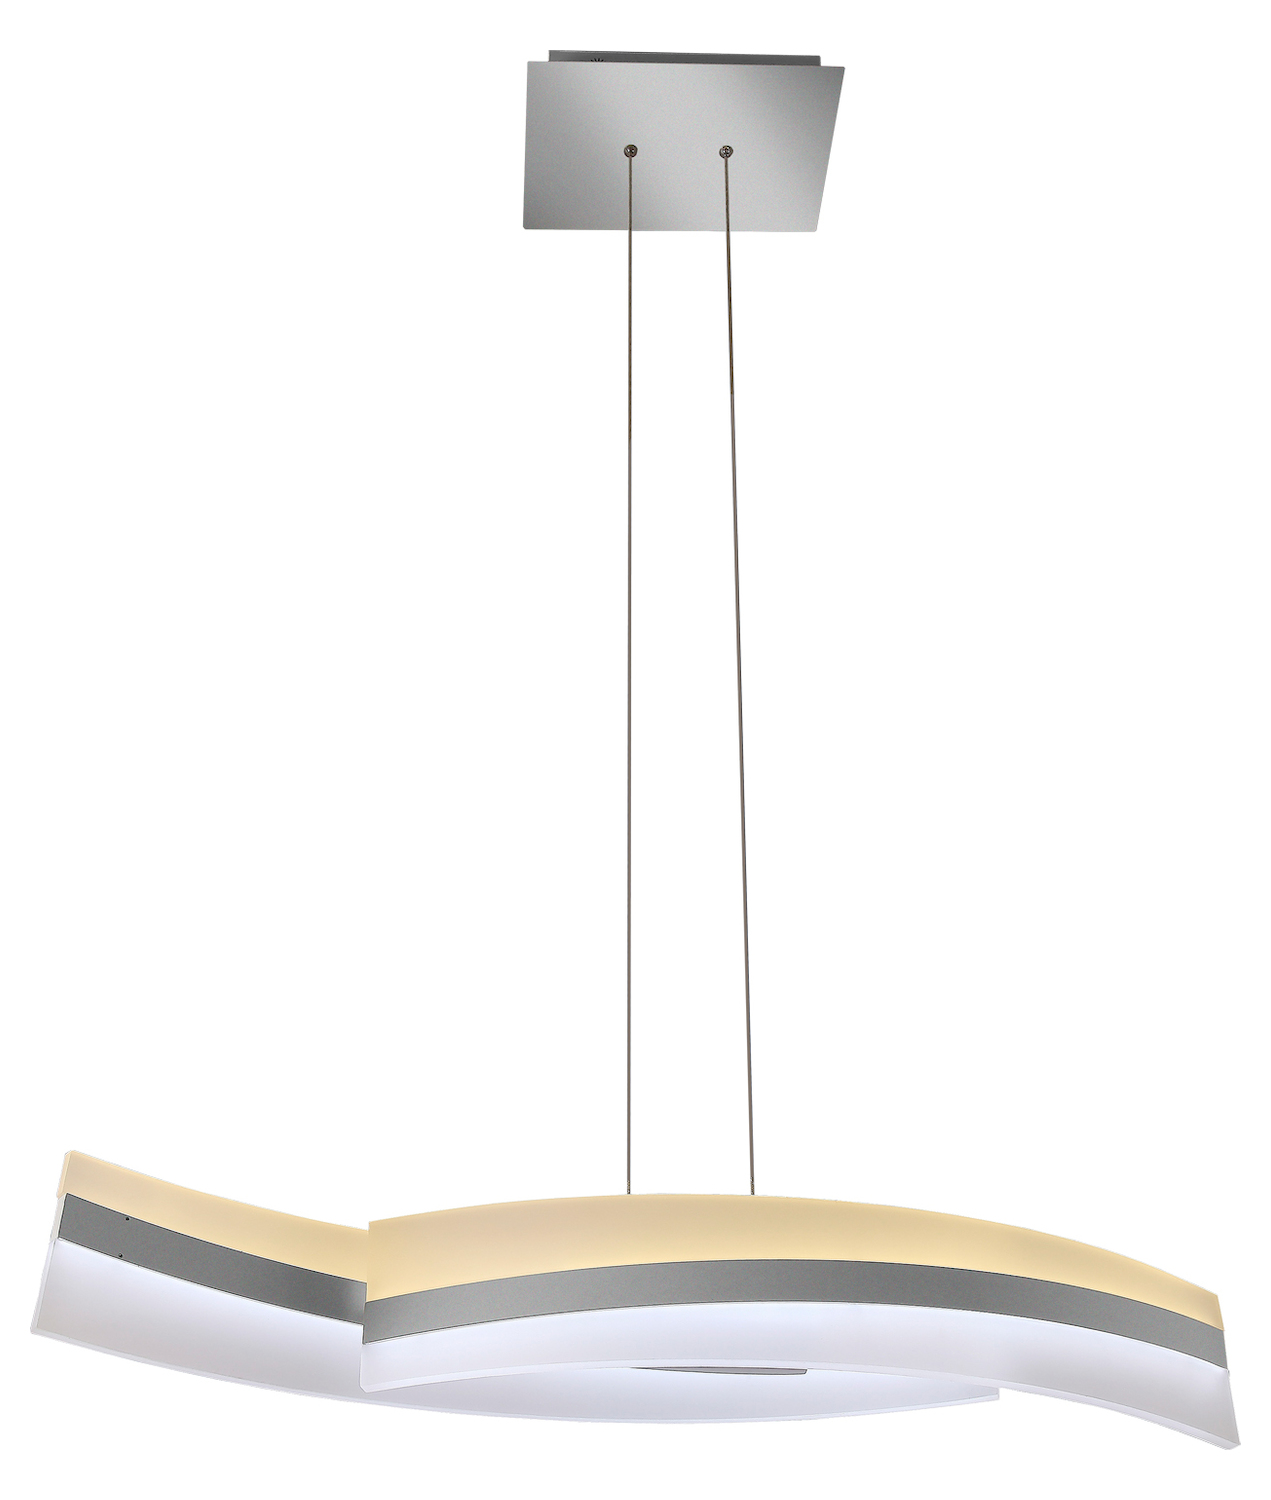 Vonn Lighting Metis Two Tier Wifi Enabled Tunable White Color Changing Led Linear Chandelier